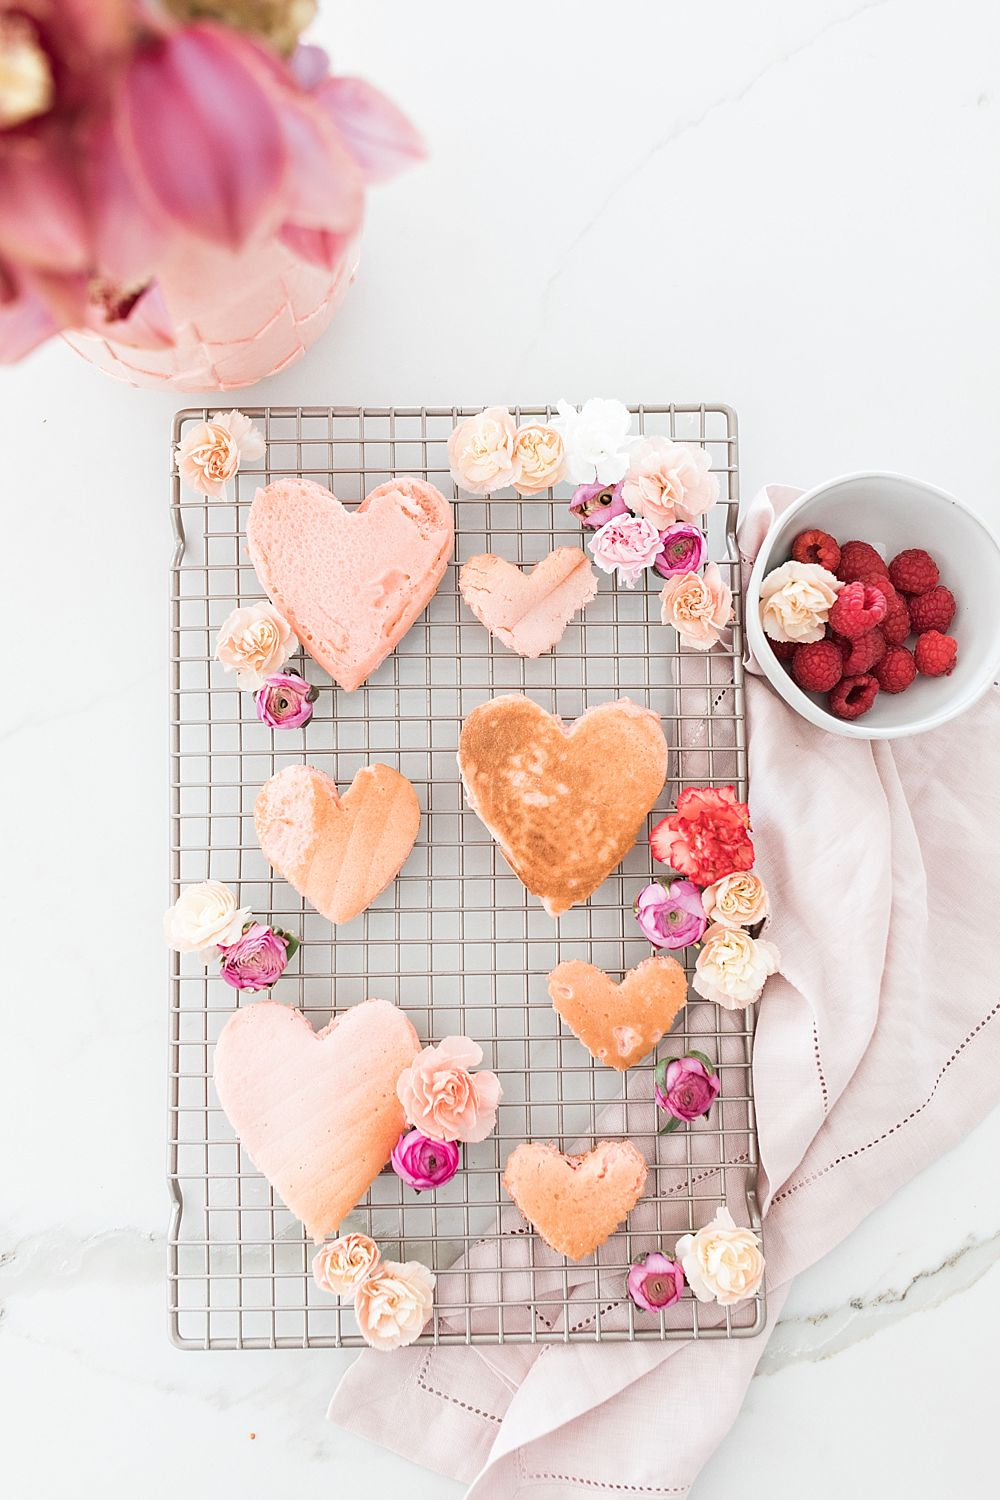 Valentine's Heart Pancakes for Valentine's Brunch with Beijos Events Blog - Ashley Baumgartner - Sacramento Wedding and Couples Photographer_0009.jpg